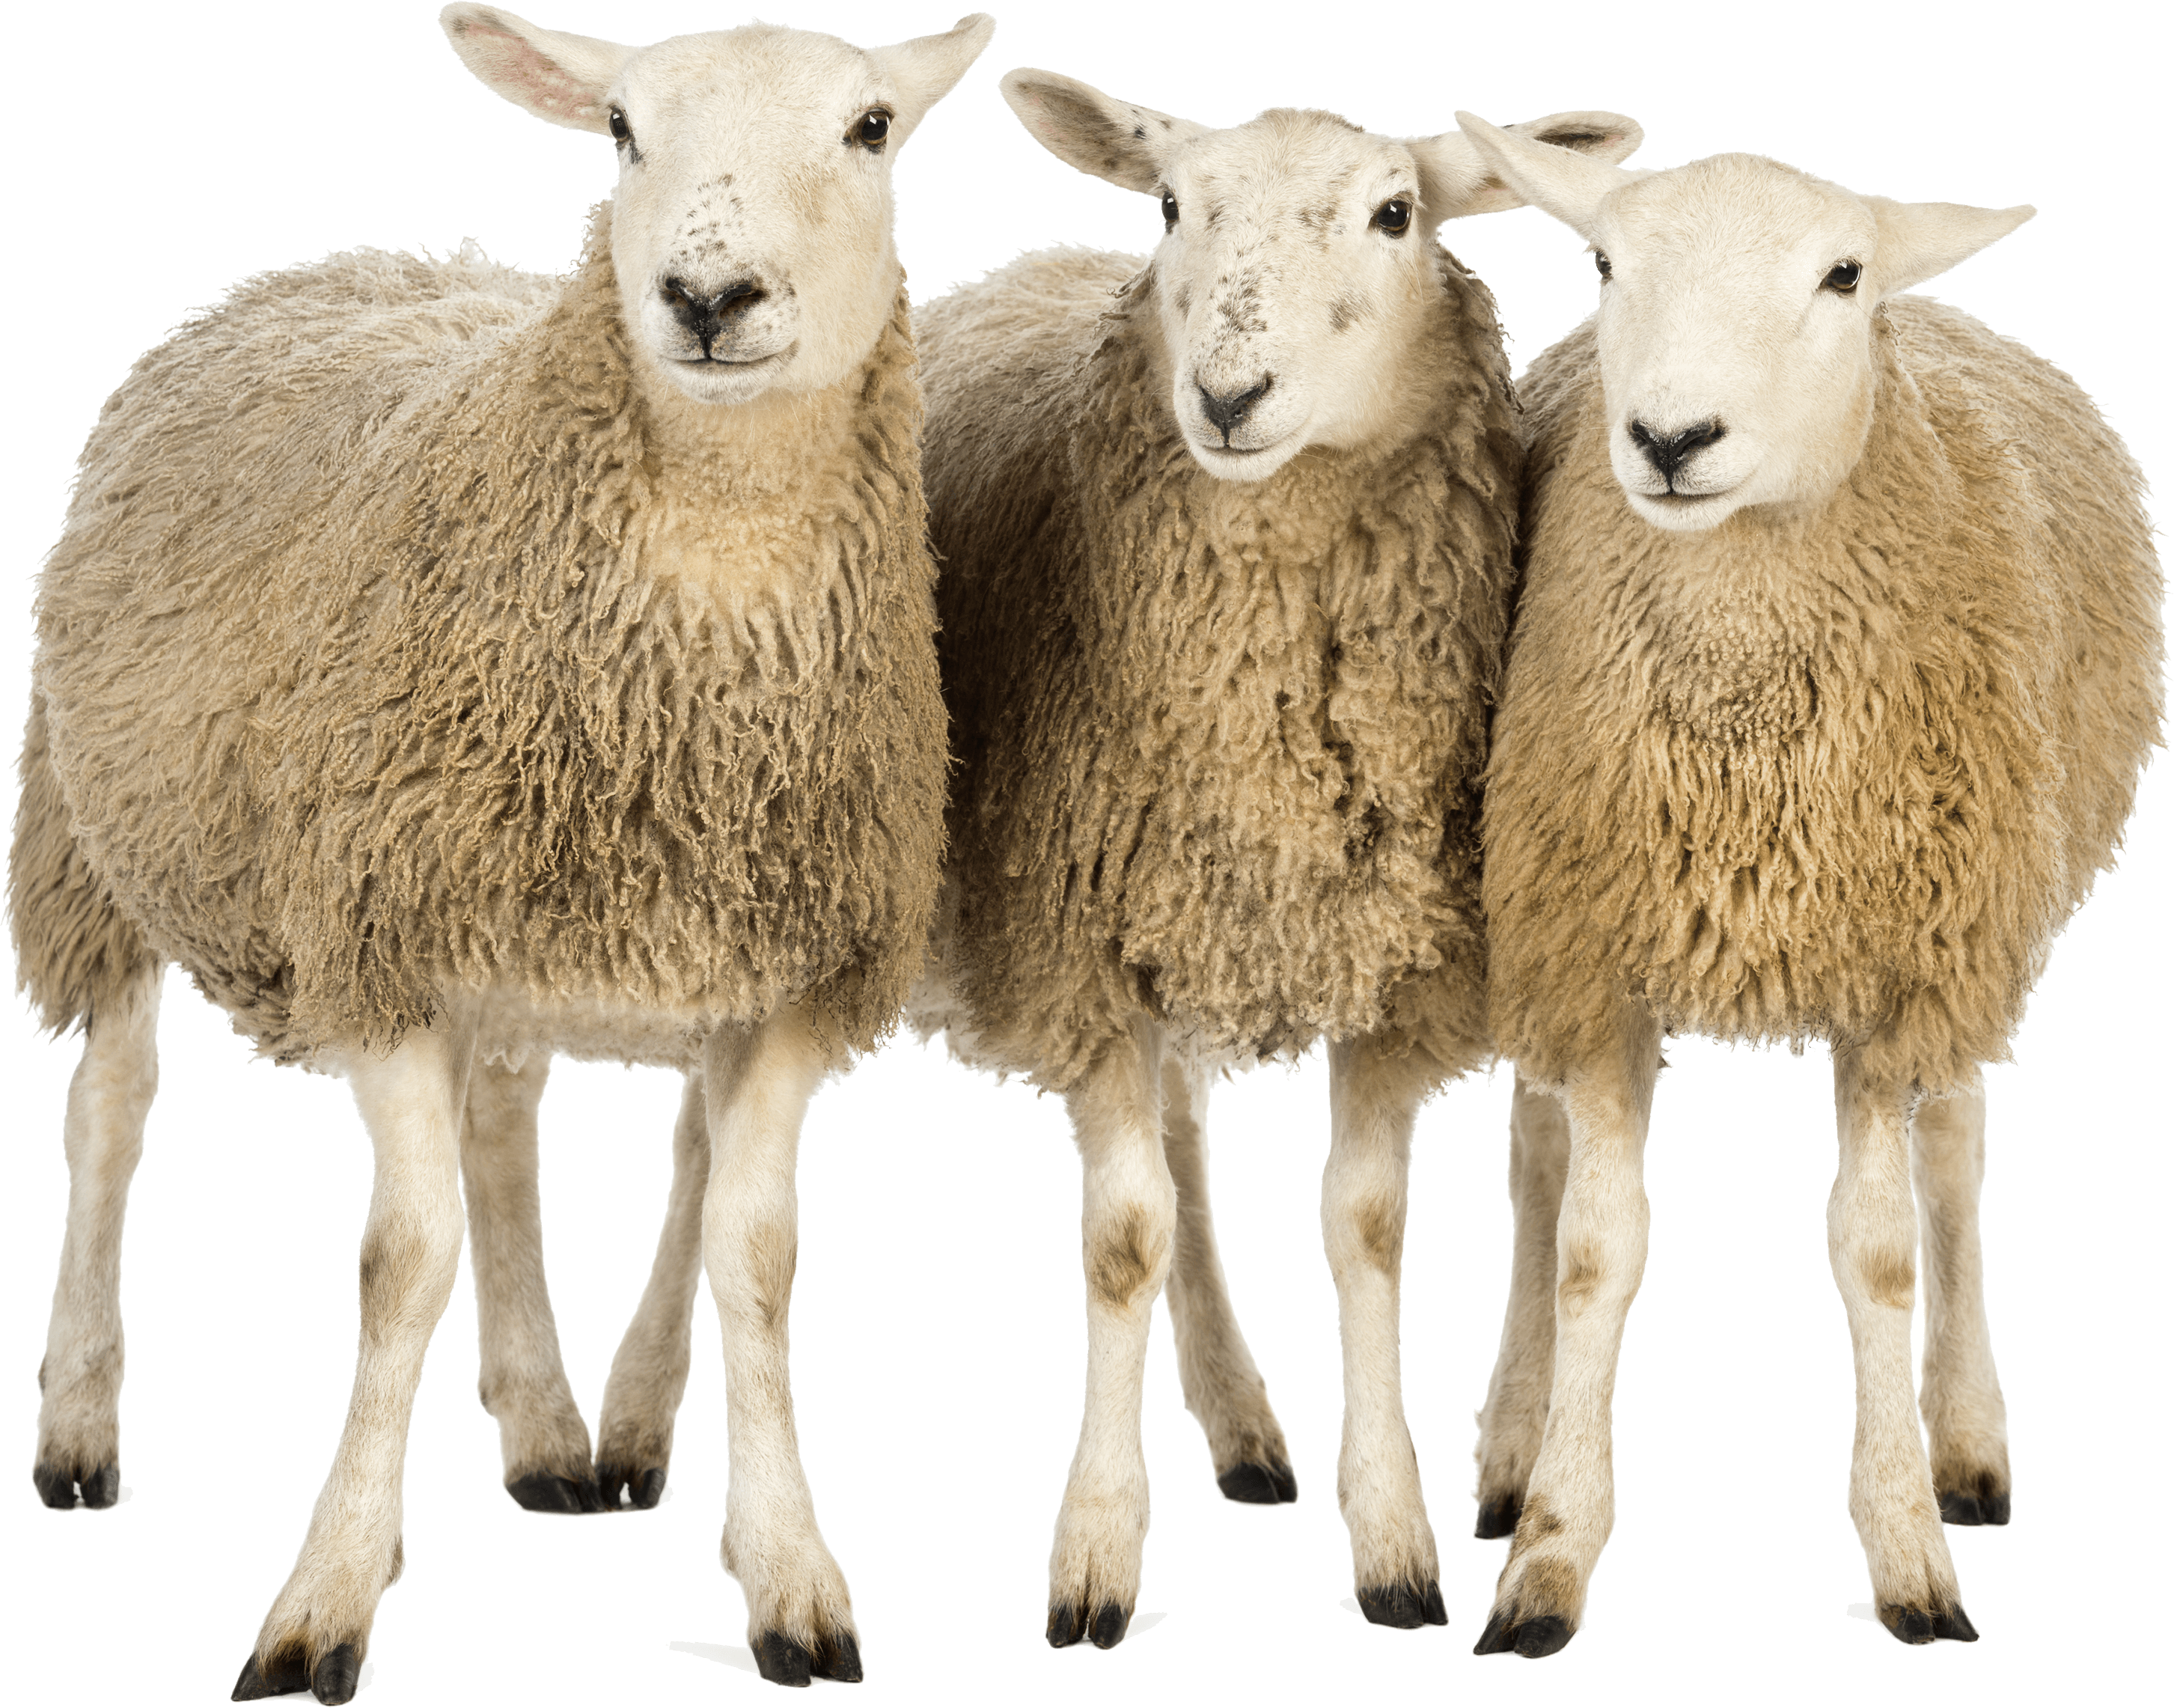 Three sheep transparent png. Clipart goat herd goat